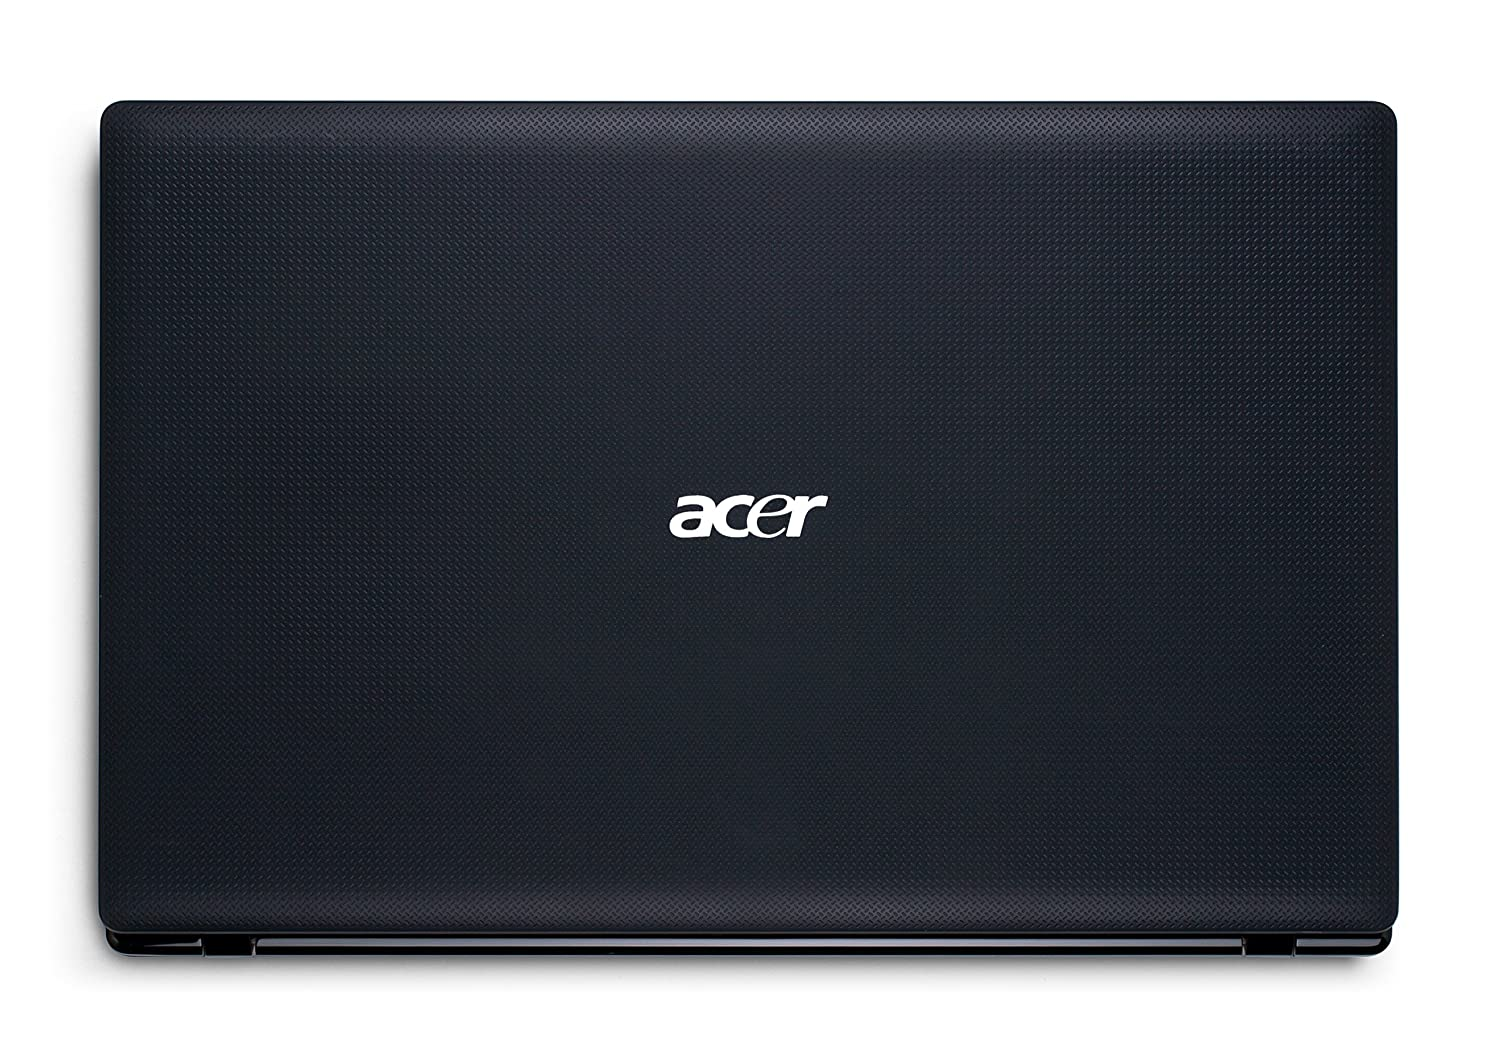 ACER ASPIRE 7750Z AMD GRAPHICS DRIVERS UPDATE